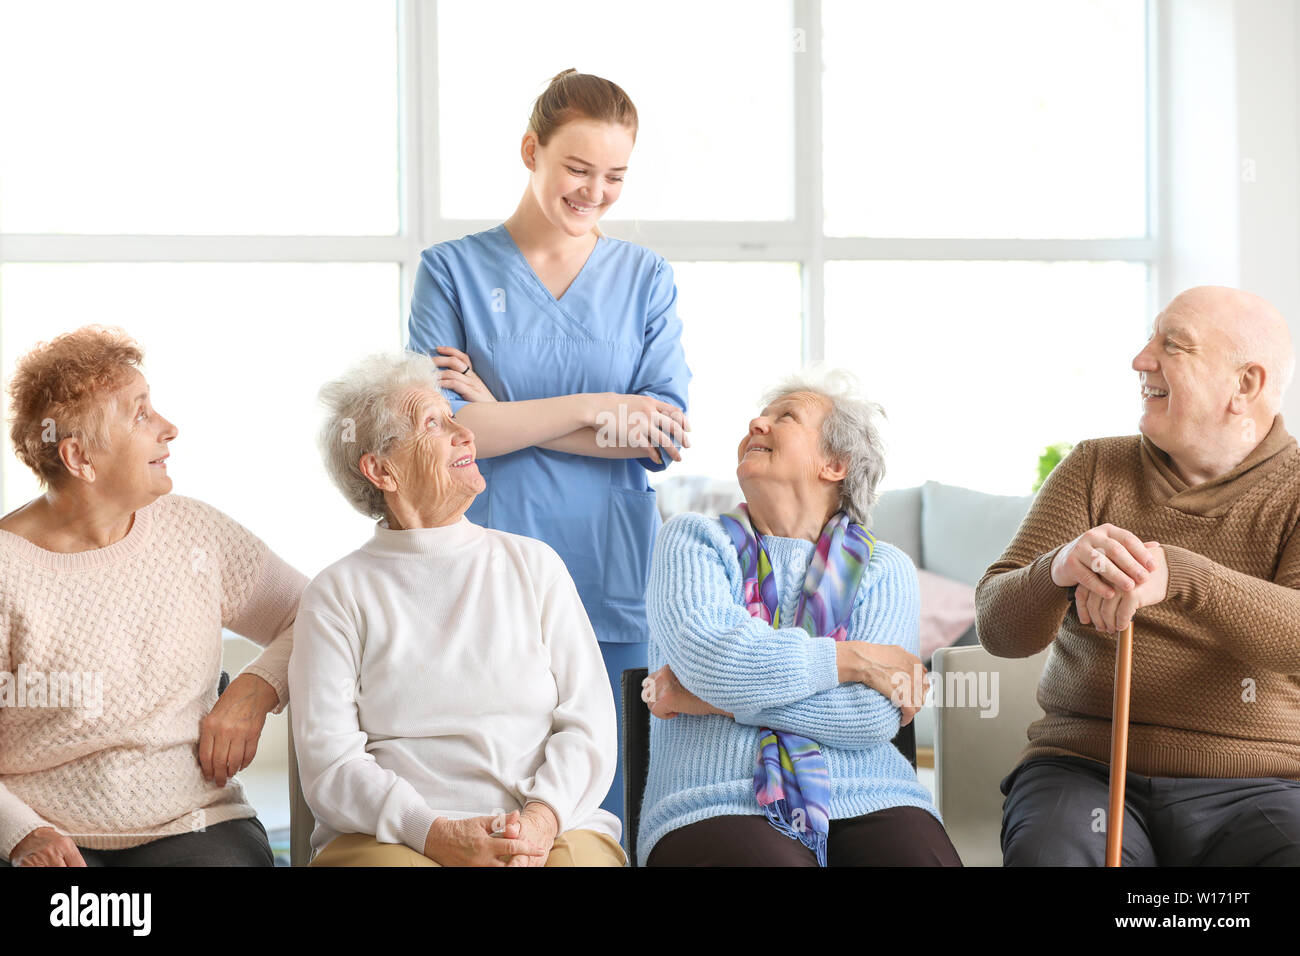 Young Caregiver With Group Of Senior People In Nursing Home Stock Photo Alamy